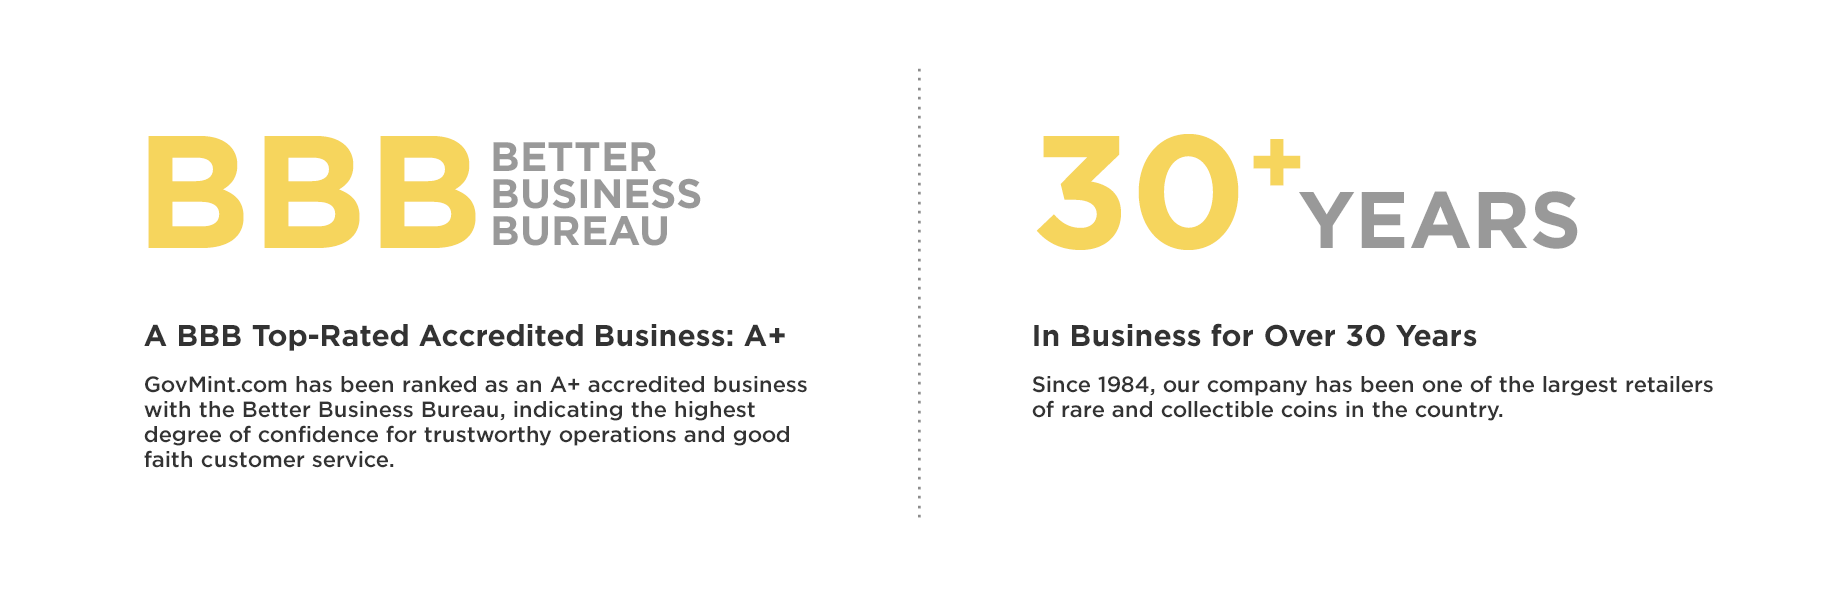 GovMint.com has been ranked as an A+ accredited business with the Better Business Bureau, indicating the highest degree of confidence for trustworthy operations and good faith customer service. GovMint.com has been in business since 1984.